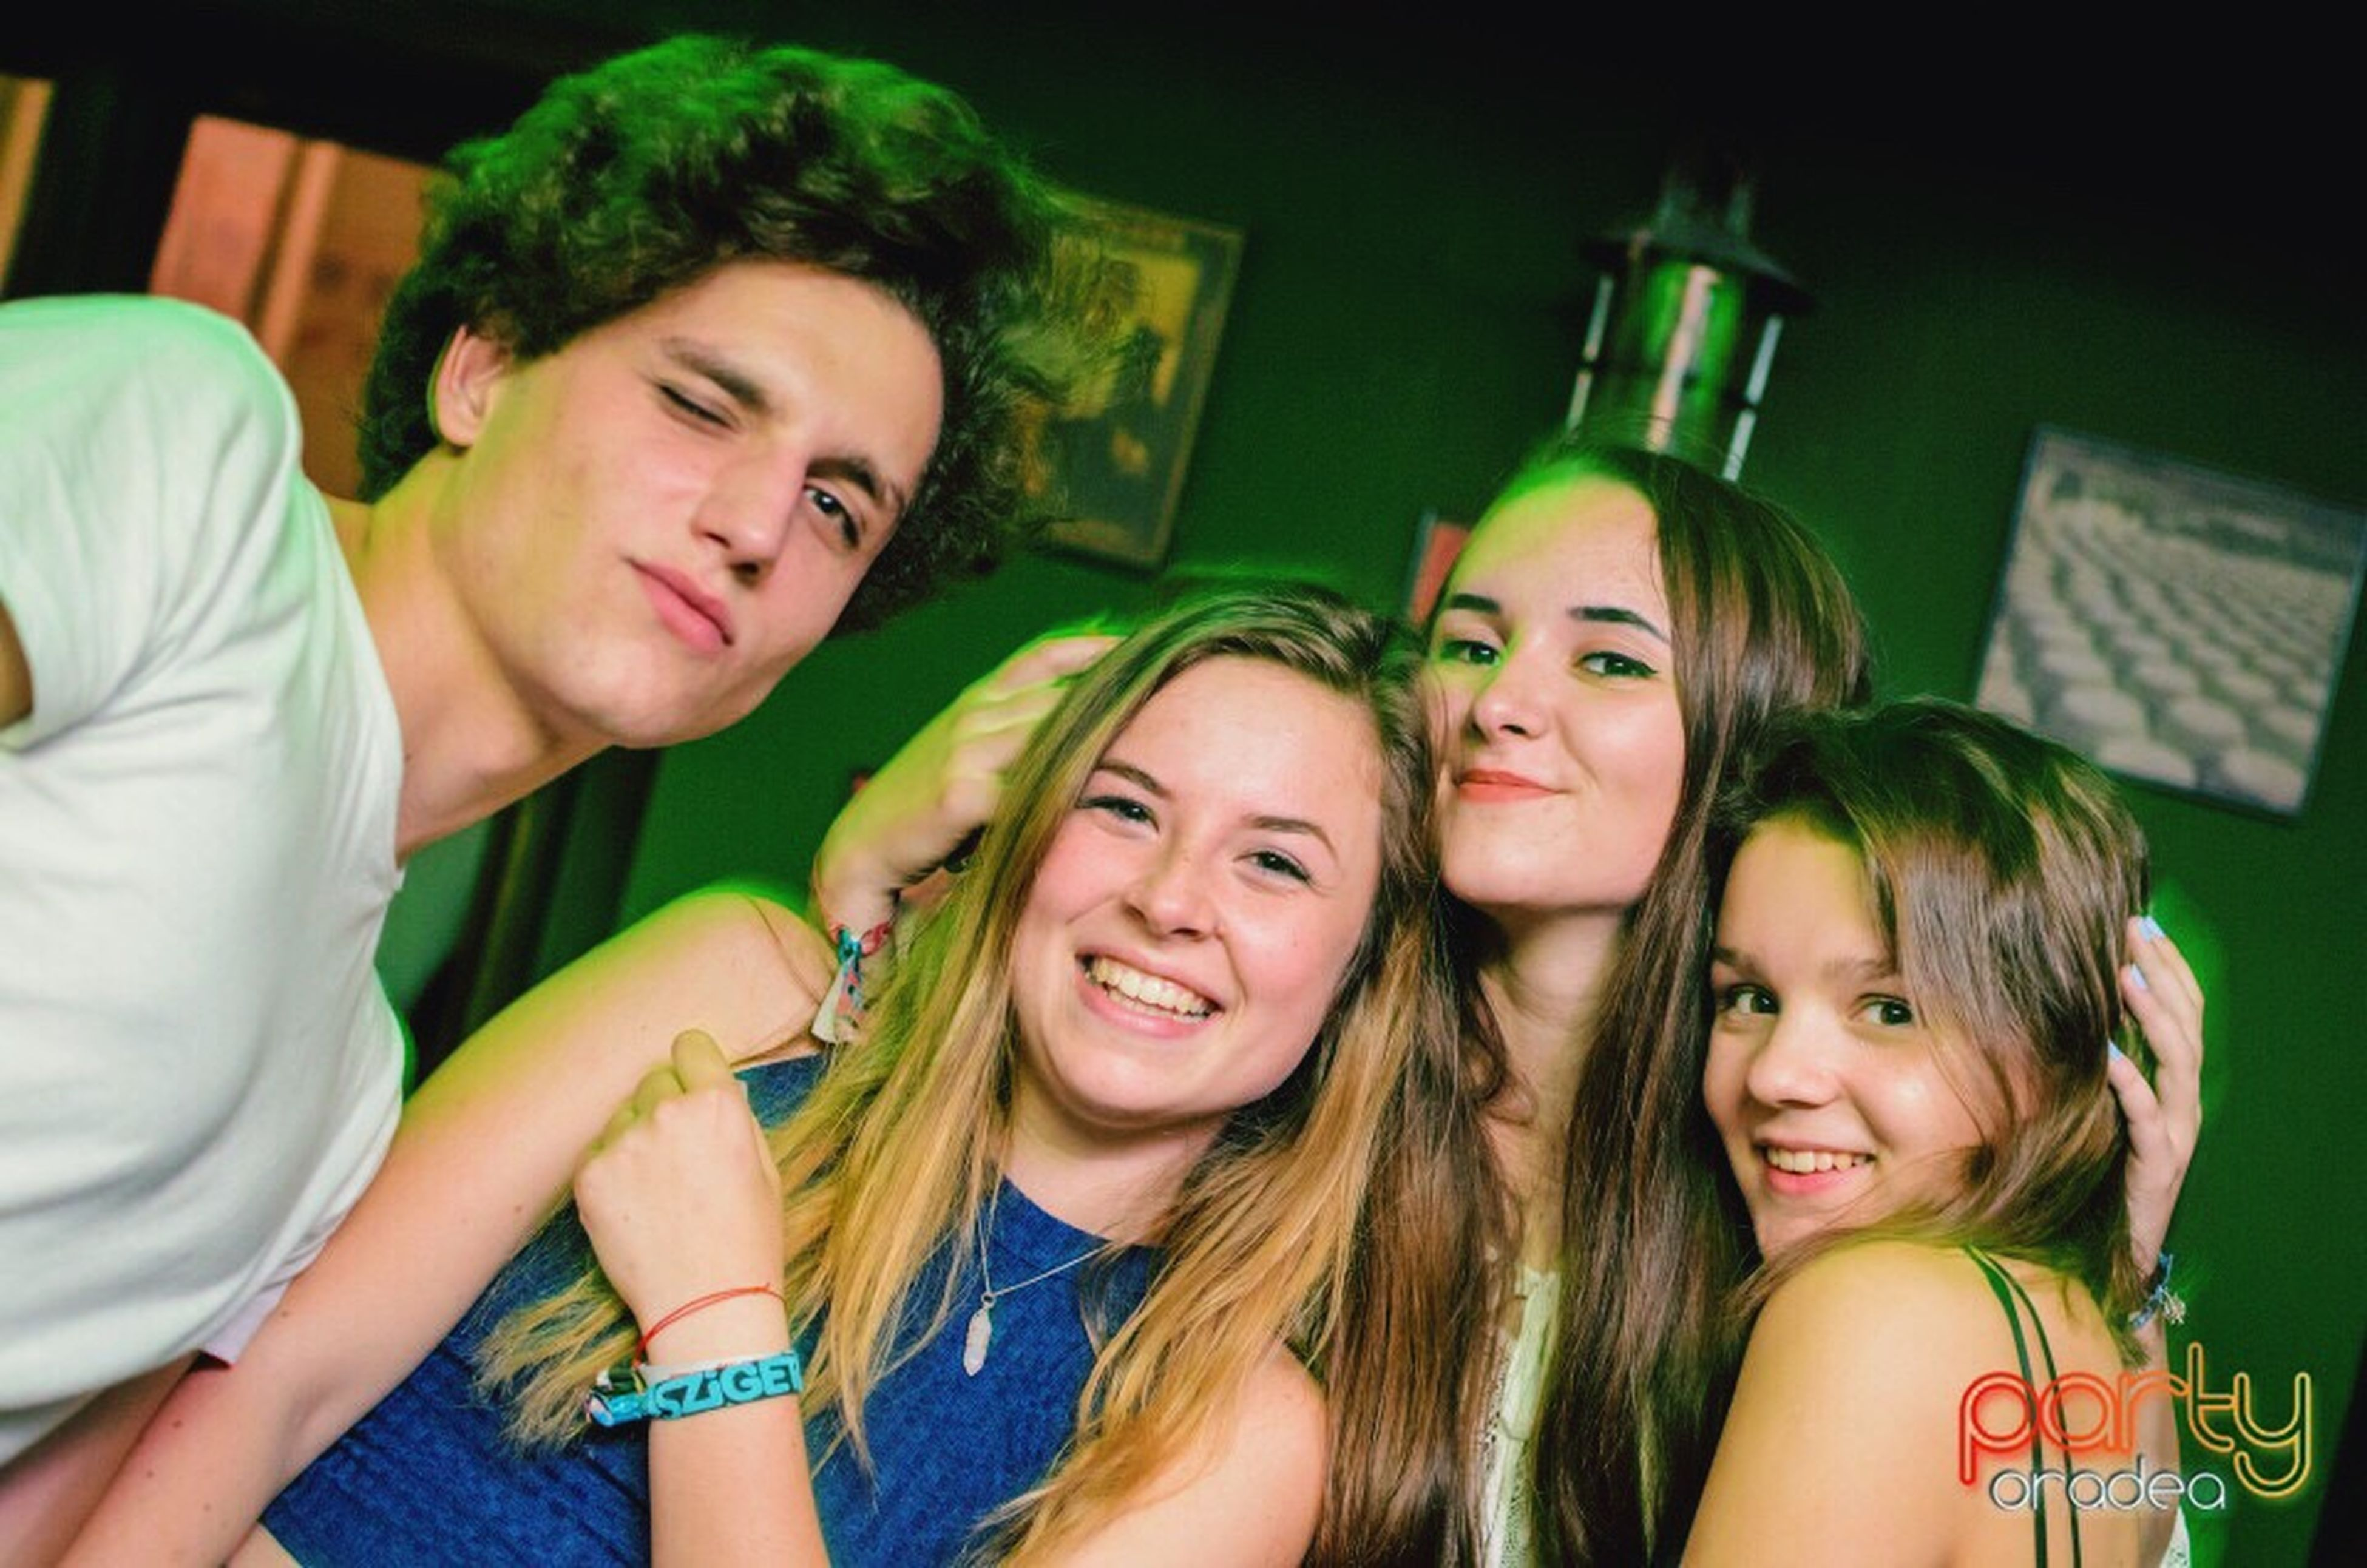 togetherness, leisure activity, lifestyles, bonding, friendship, love, teenage girls, young women, casual clothing, smiling, happiness, person, green color, family, front view, young adult, long hair, enjoyment, teenage boys, looking at camera